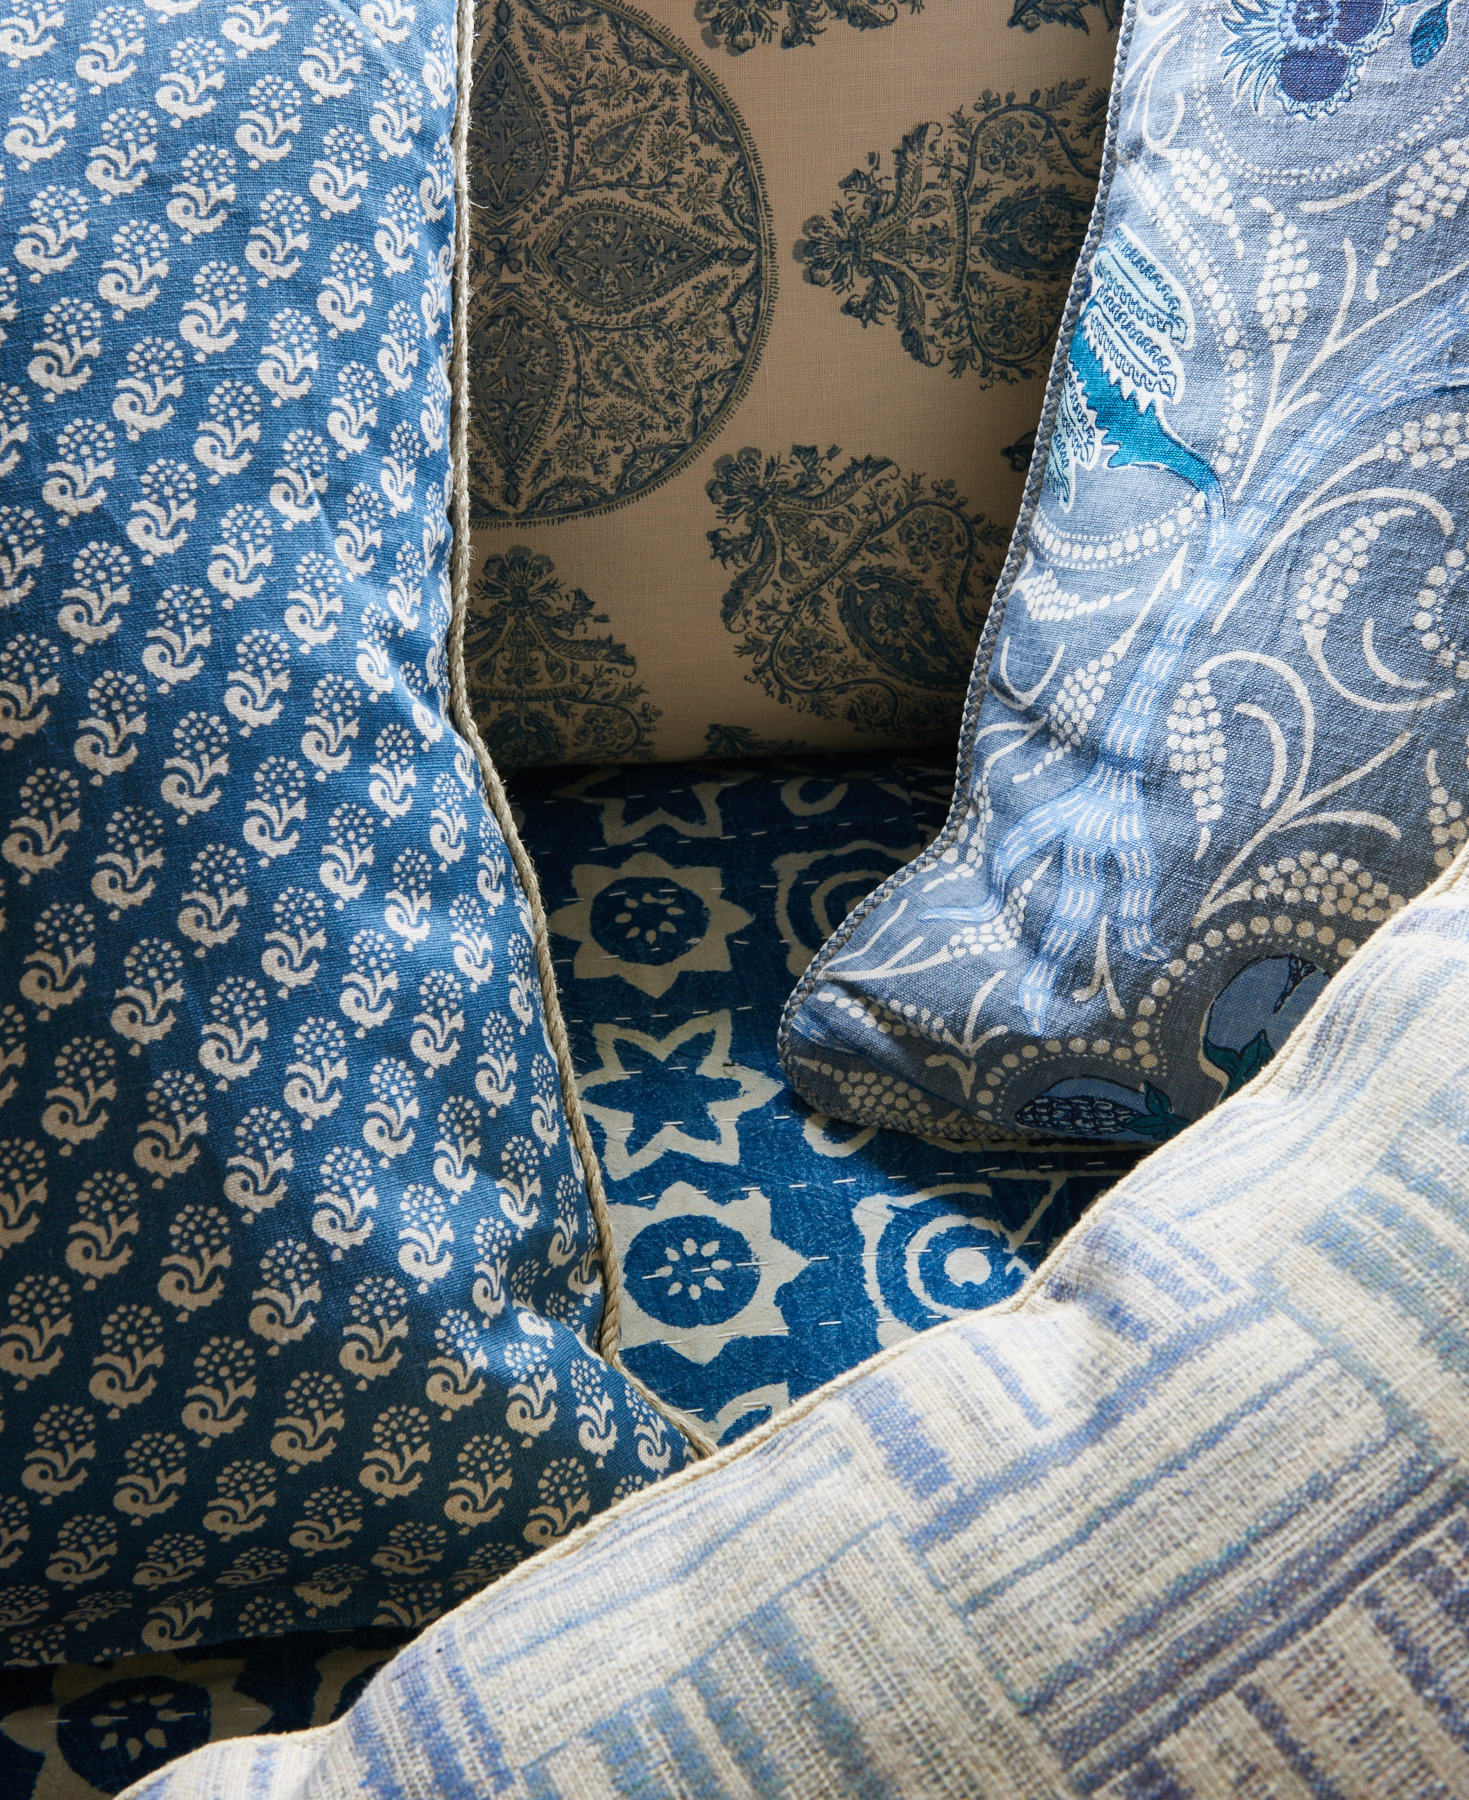 Various patterned and textured shams